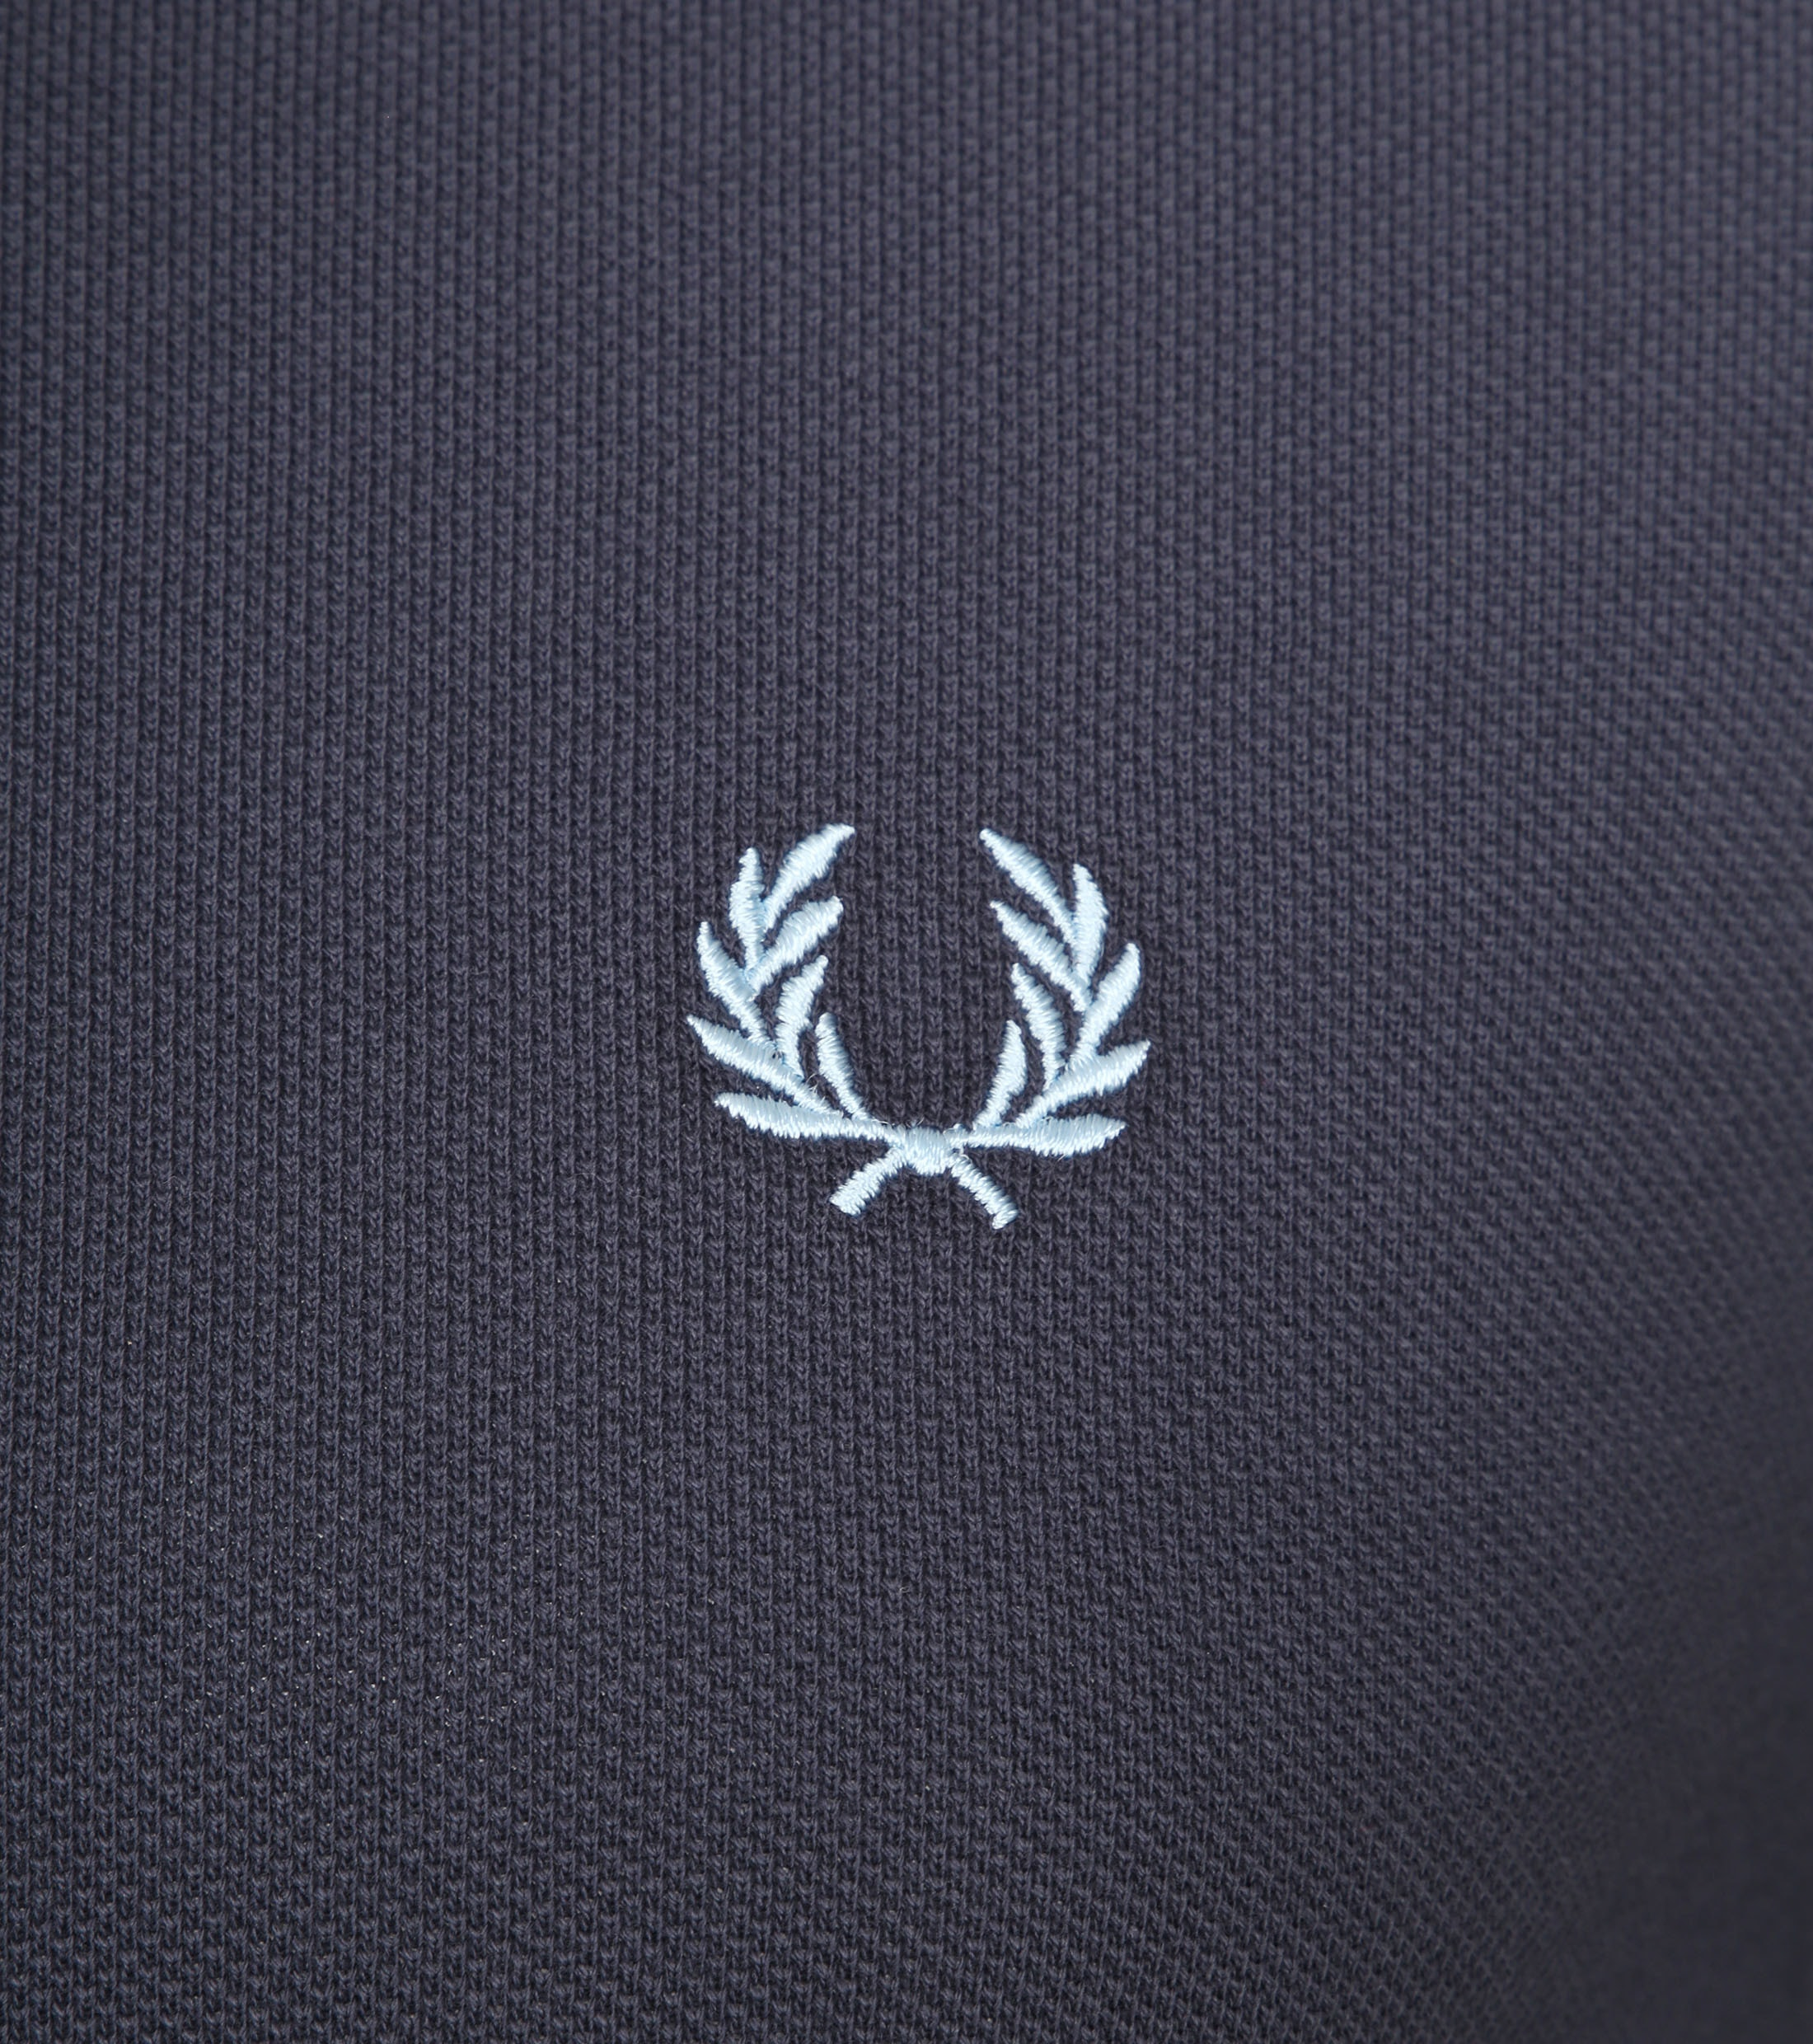 Fred Perry Poloshirt Dark Grey Blue C12 foto 1